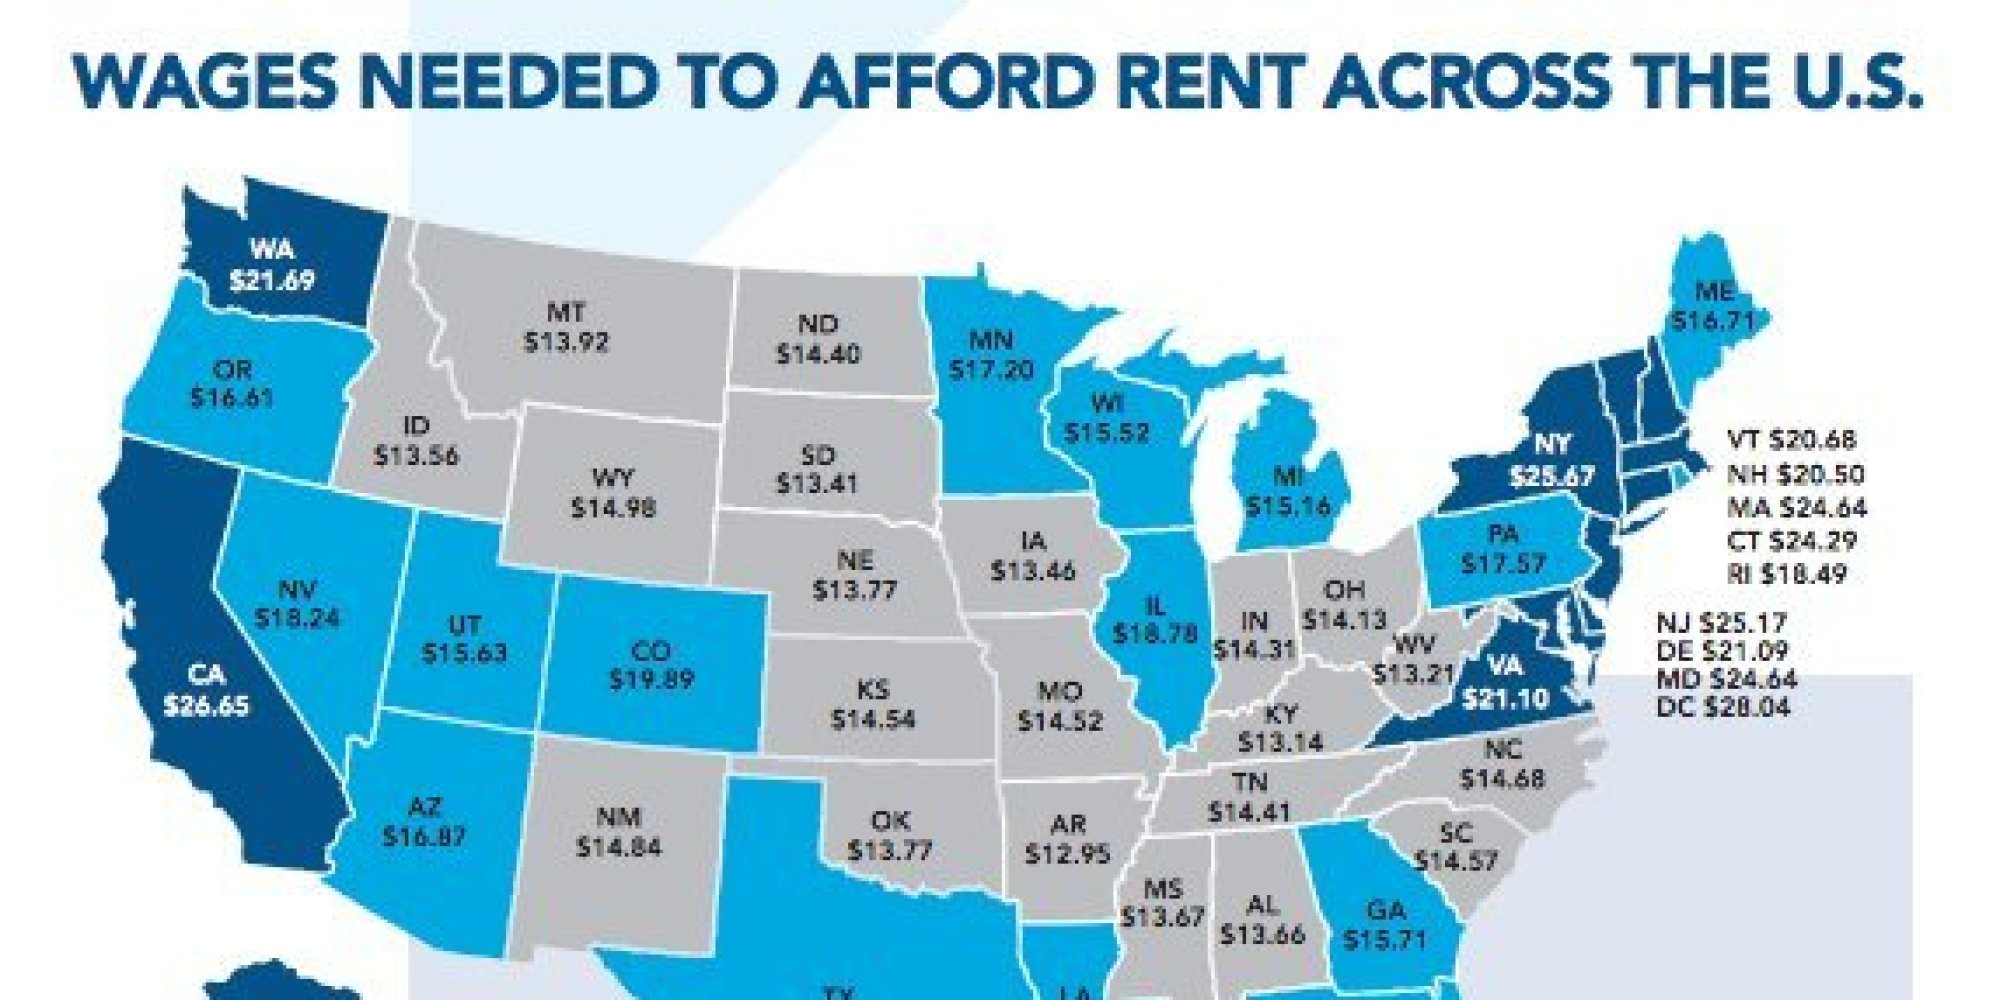 This Is The Hourly Wage You Need To Afford A 2 Bedroom Apartment Around The  U.S. | HuffPost